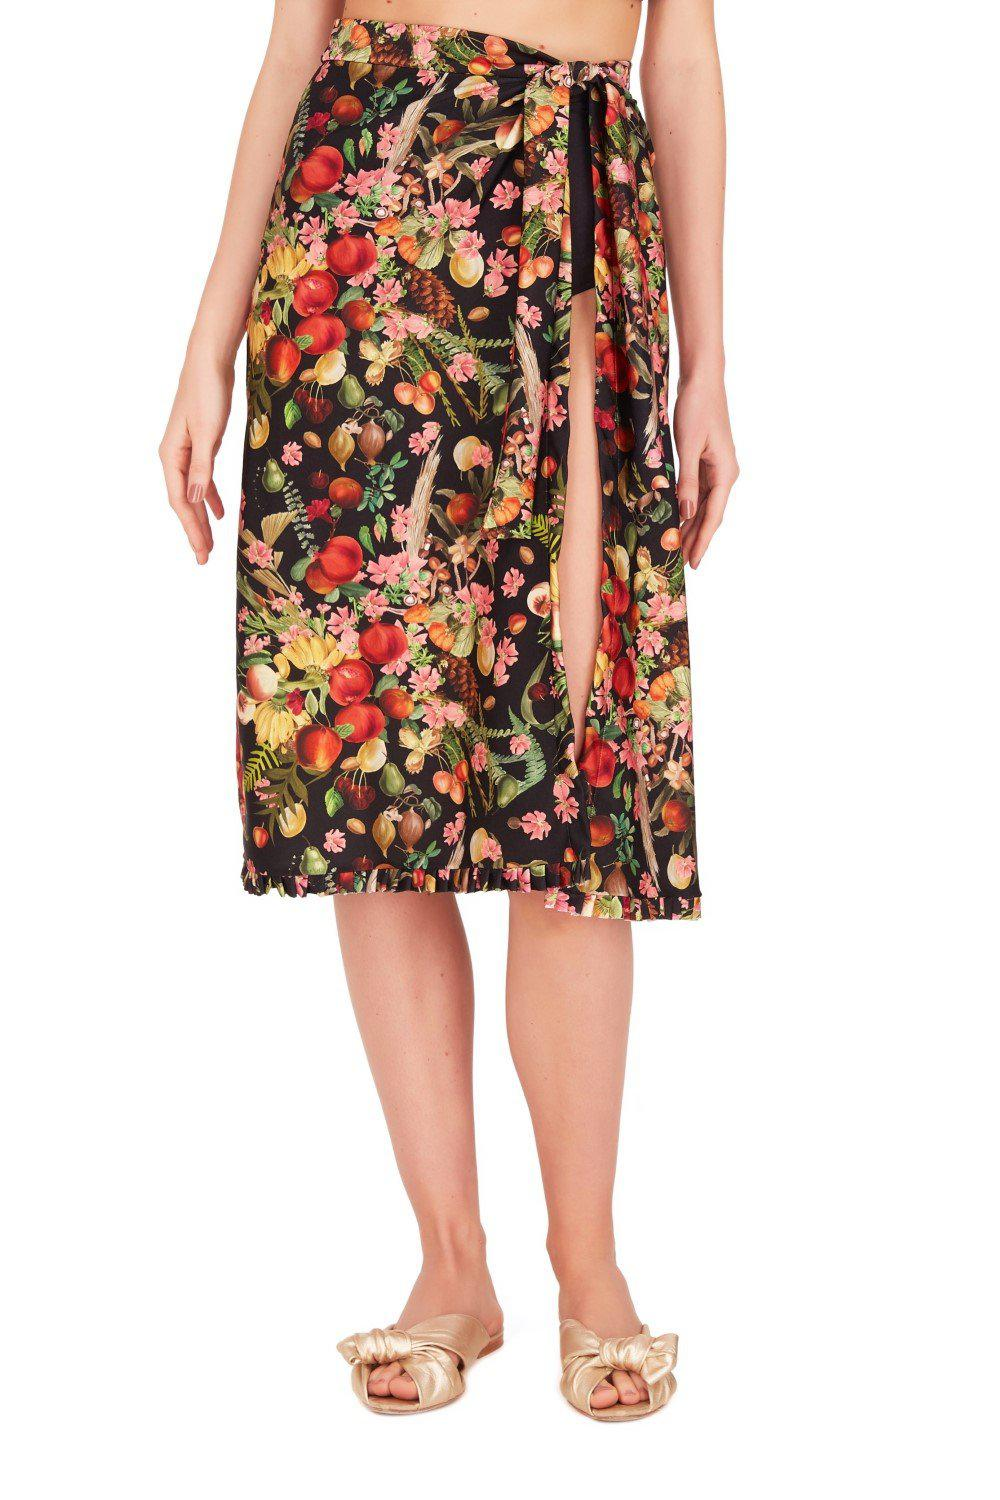 Fruits Exotiques Pareo Skirt with Frills 1